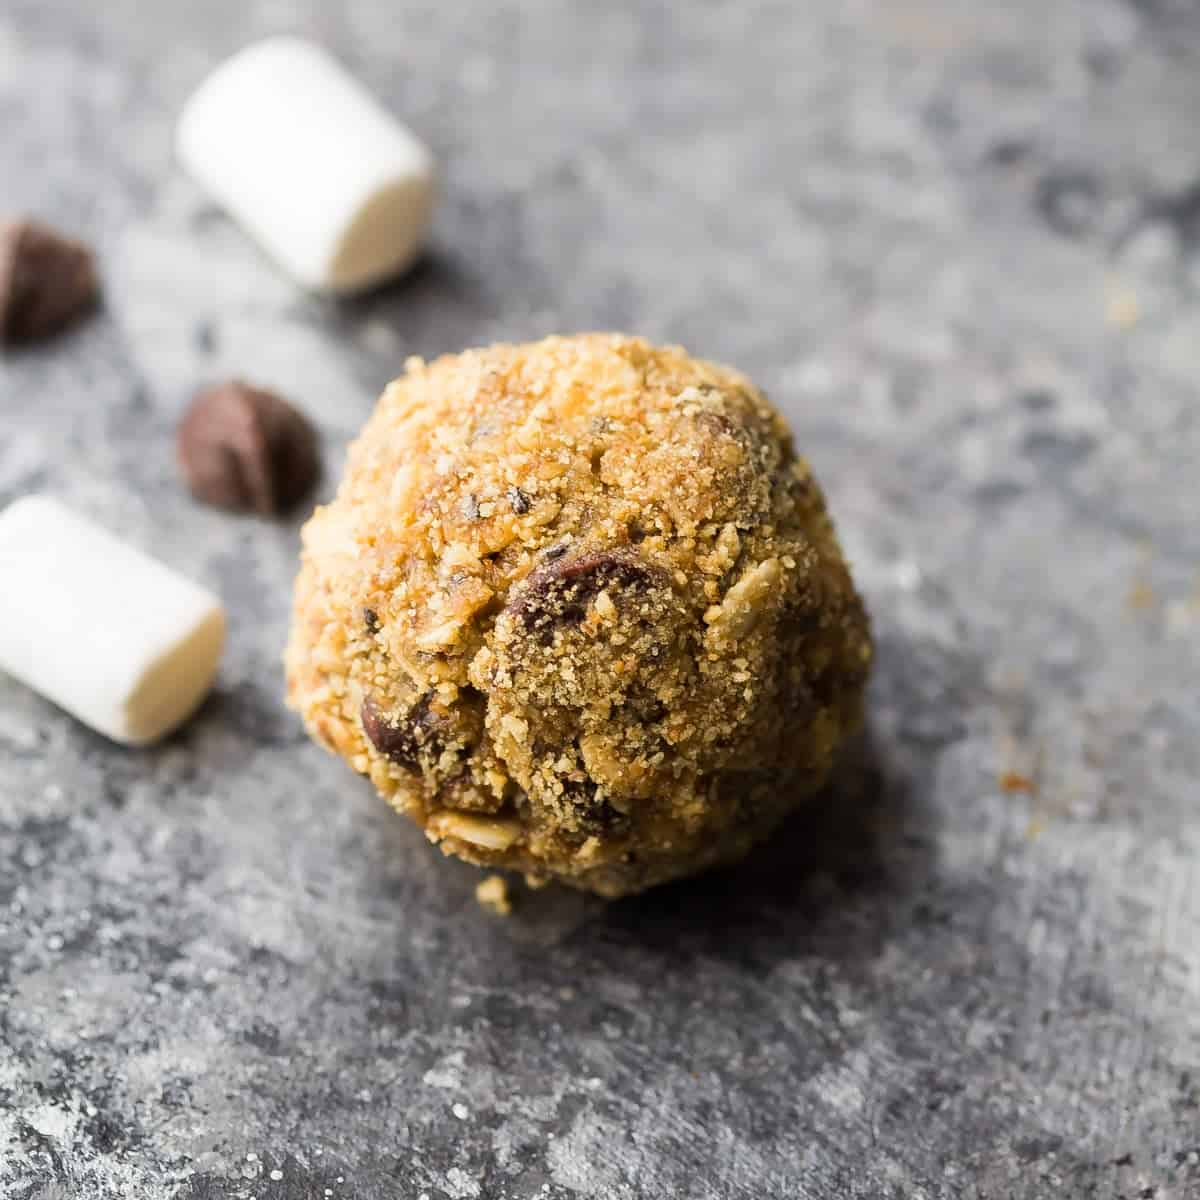 SEVEN delicious no bake energy balls! These vegan, gluten-free, high protein snacks are perfect to prep ahead and stash in the fridge or freezer. #sweetpeasandsaffron #energybite #mealprep